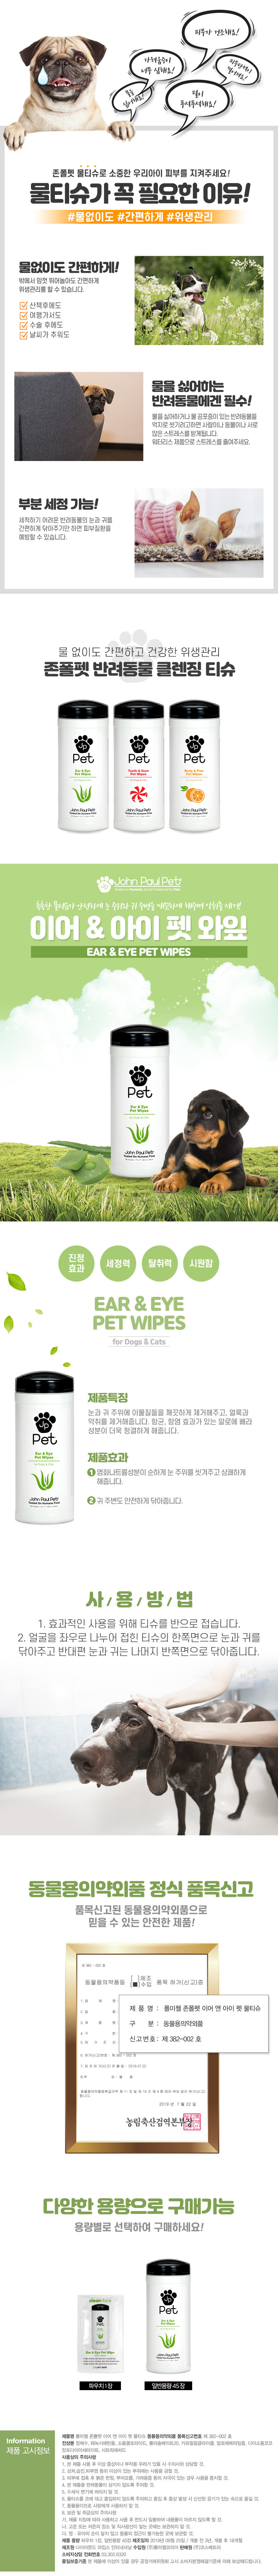 johnpaulpet_ear&eye_wipes_800.jpg